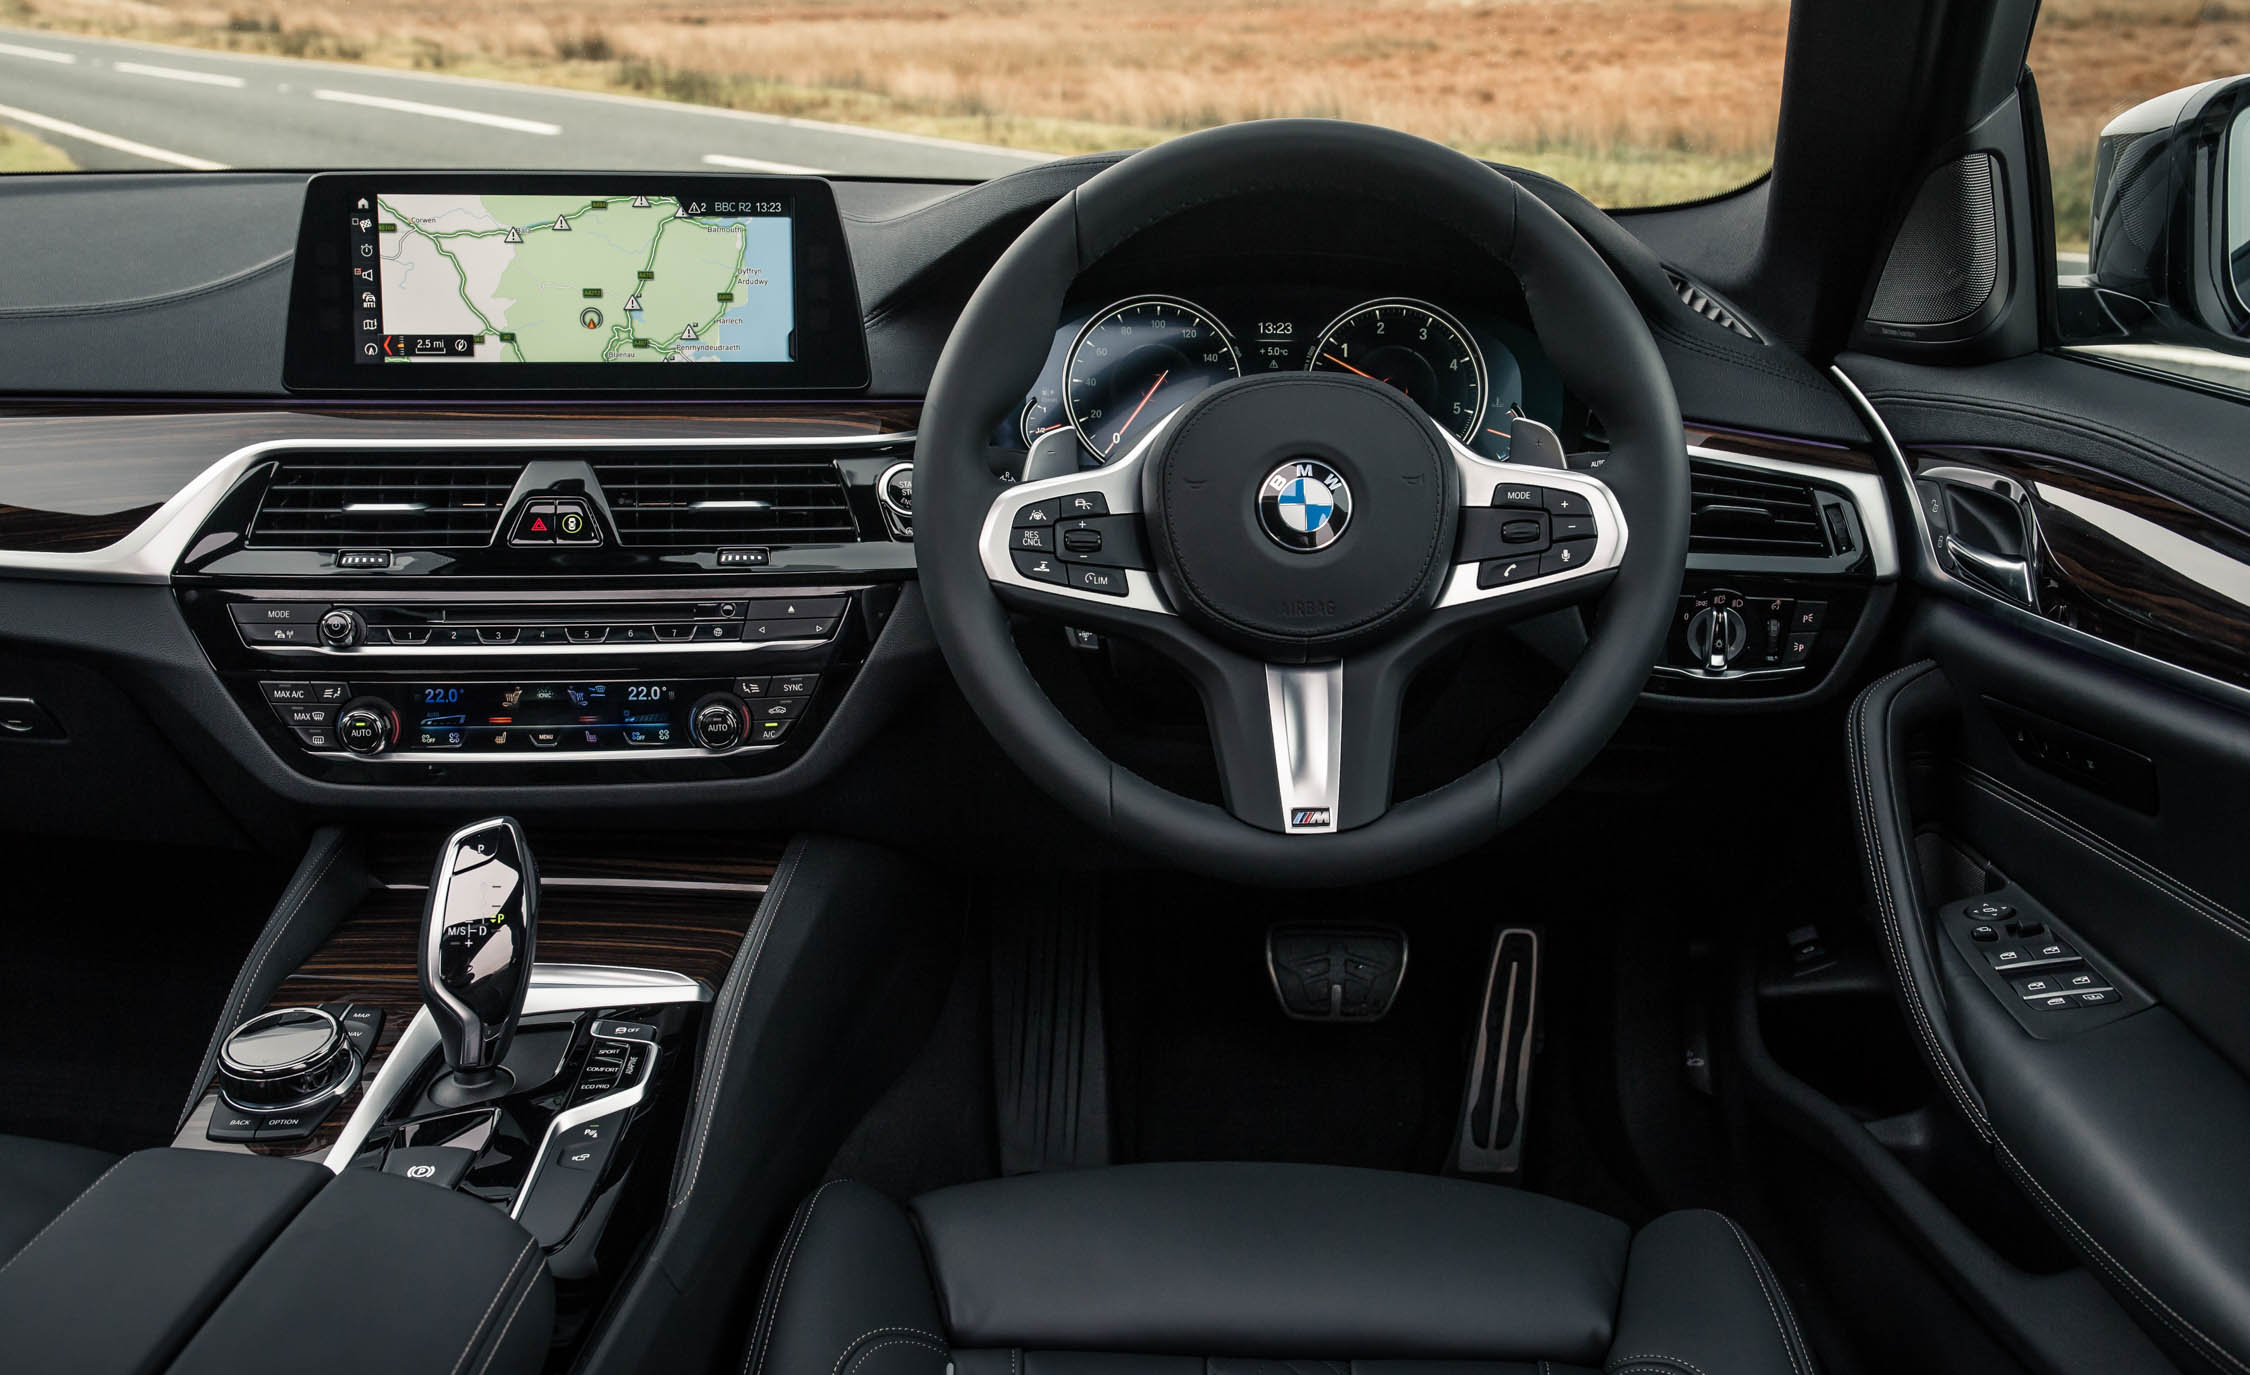 2017 BMW 530d Interior Driver Steering And Dashboard (Photo 32 of 32)